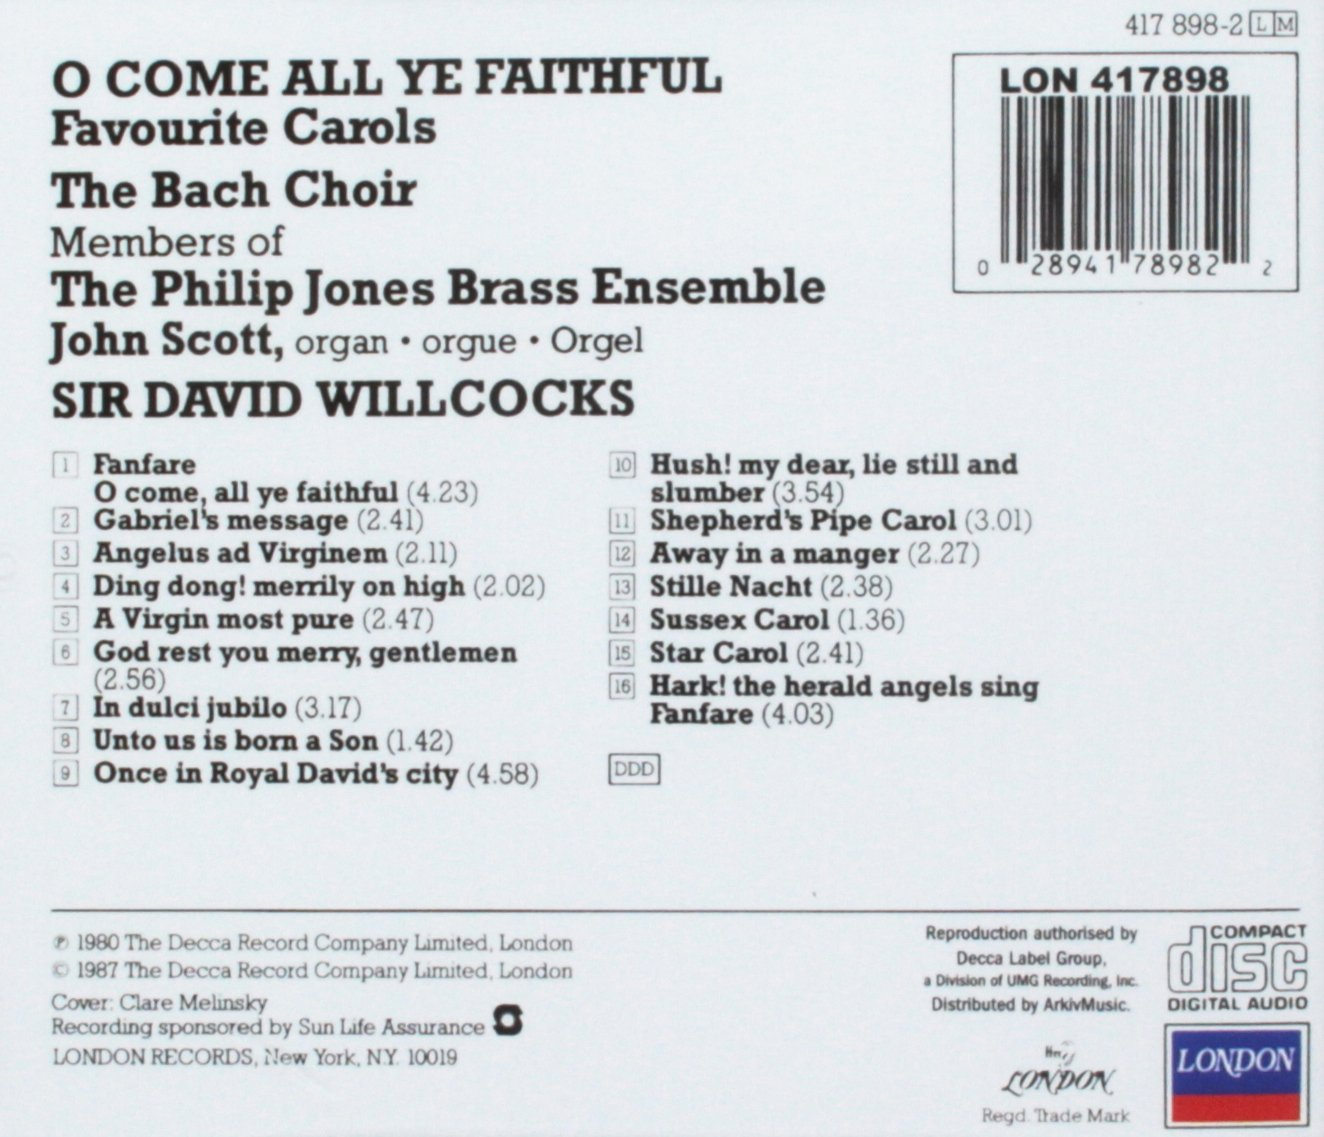 David Willcocks, The Philip Jones Brass Ensemble, The Bach Choir, John Scott - O Come All Ye Faithful: Favourite Carols - Amazon.com Music